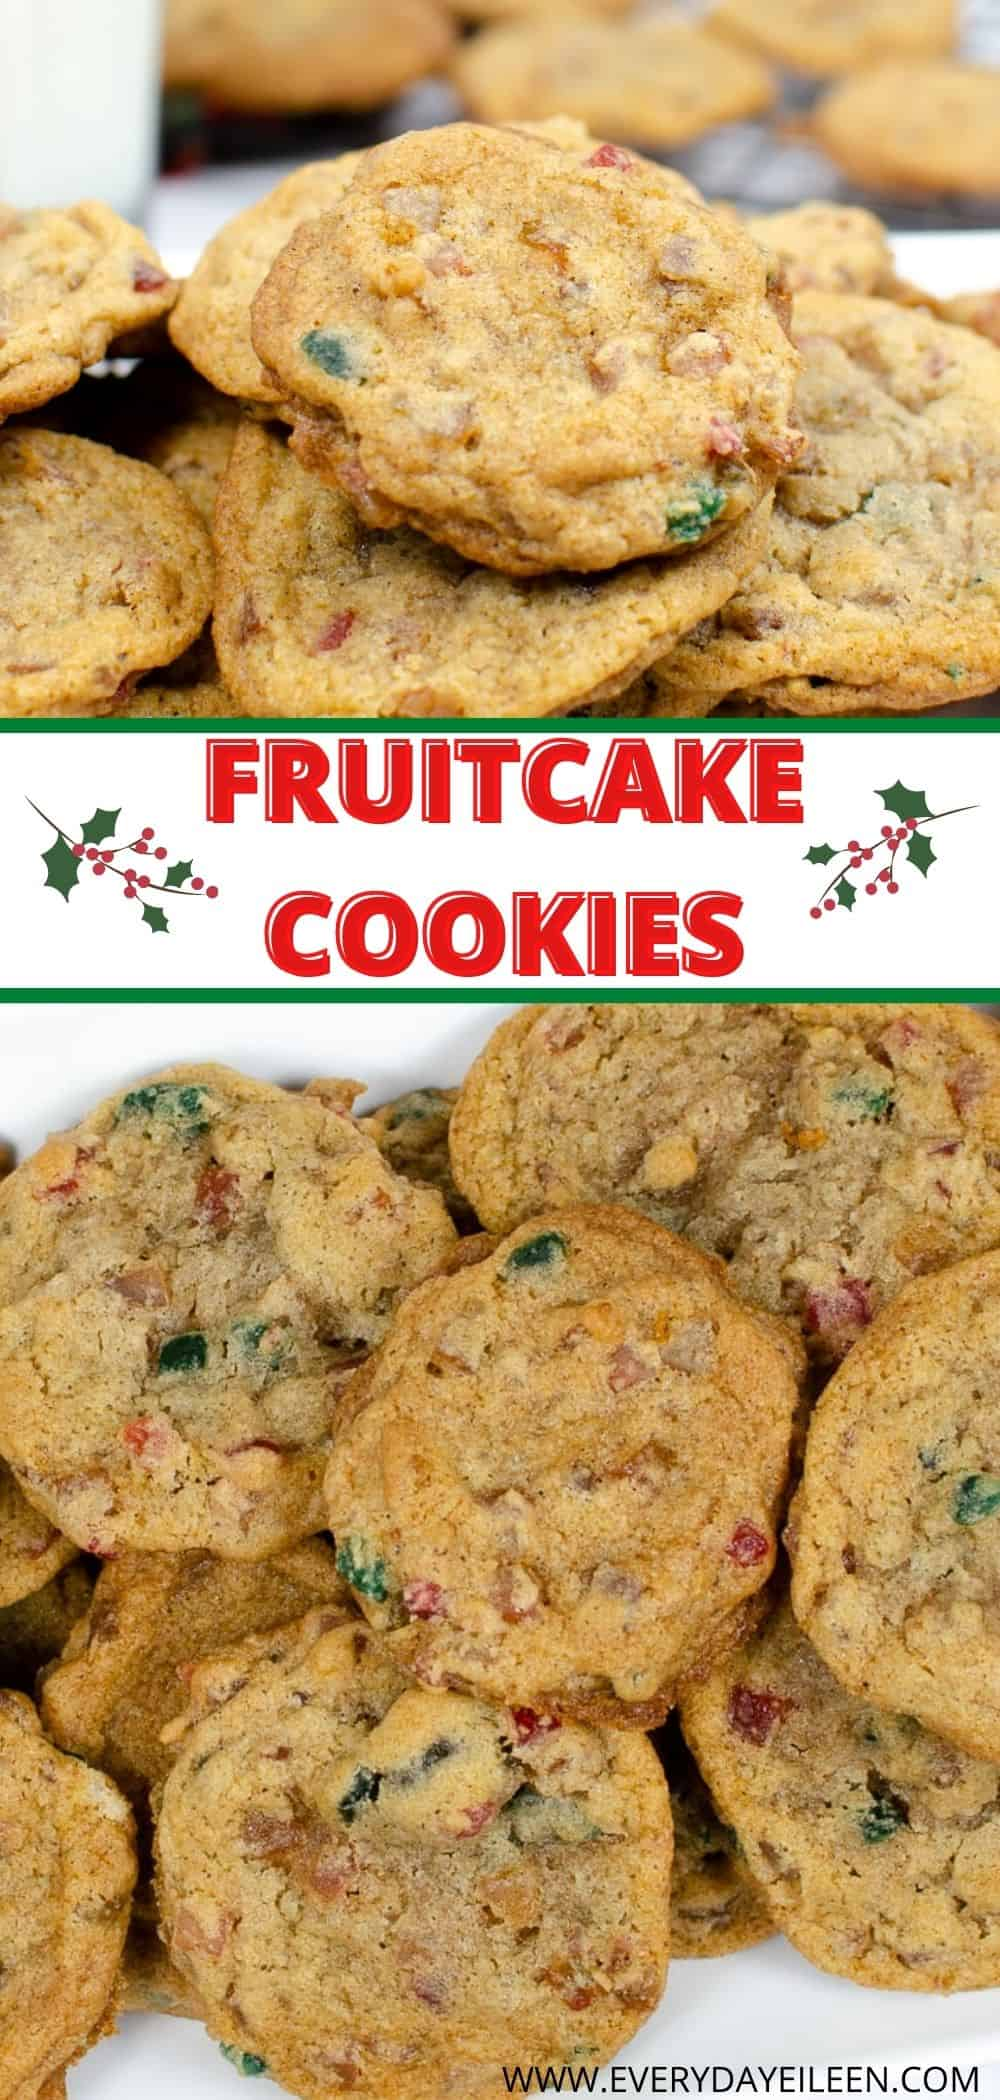 Fruitcake Cookies are an easy Holiday drop cookie recipe. They are loaded with candied fruit and perfect for your Holiday dessert table. #christmascookies #fruitcakecookies #holidaycookies #everydayeileen via @/everydayeileen/